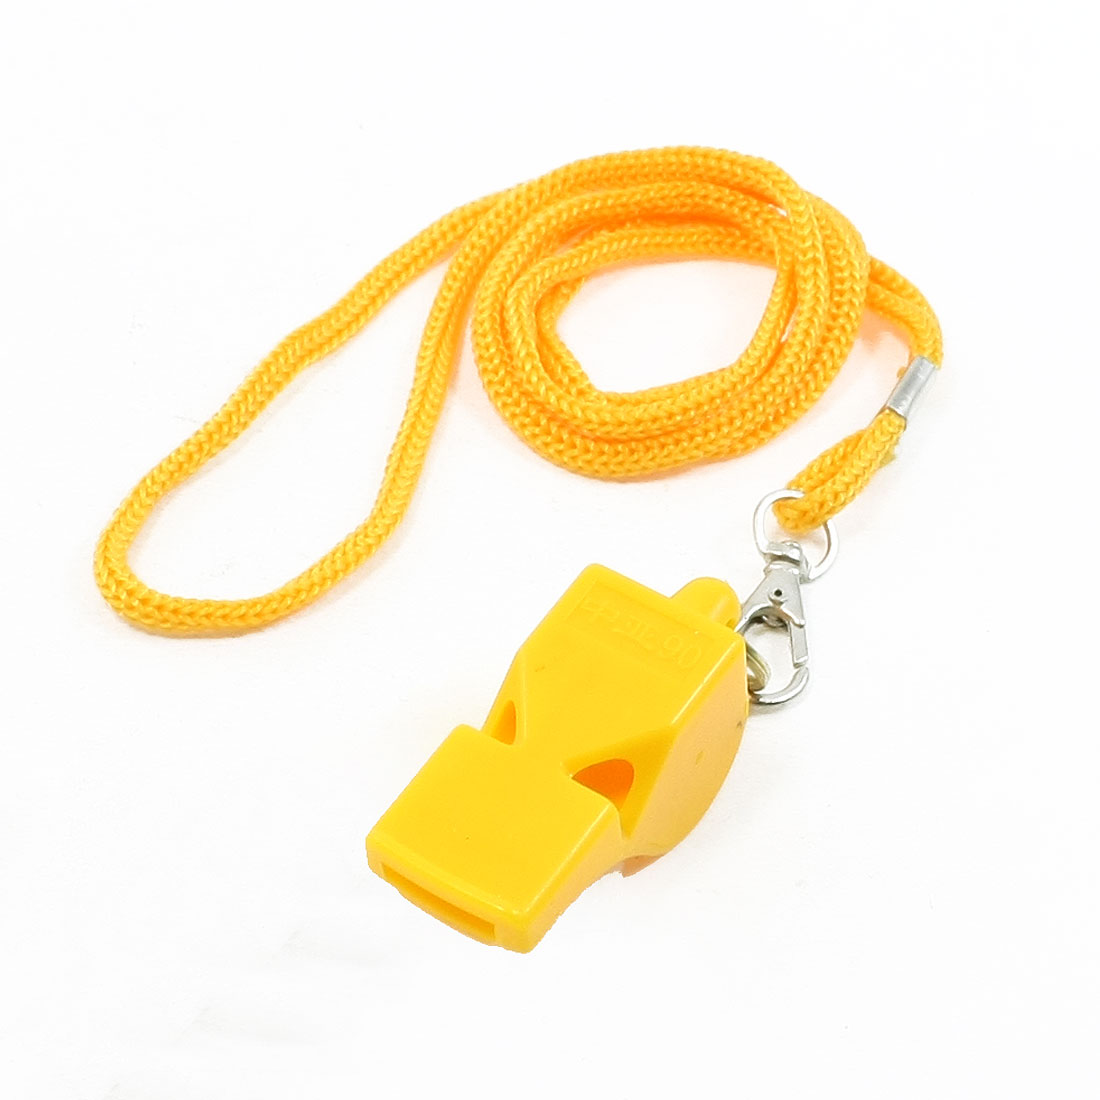 Outdoor Activities Portable Referee Whistle Yellow w Nylon Lanyard